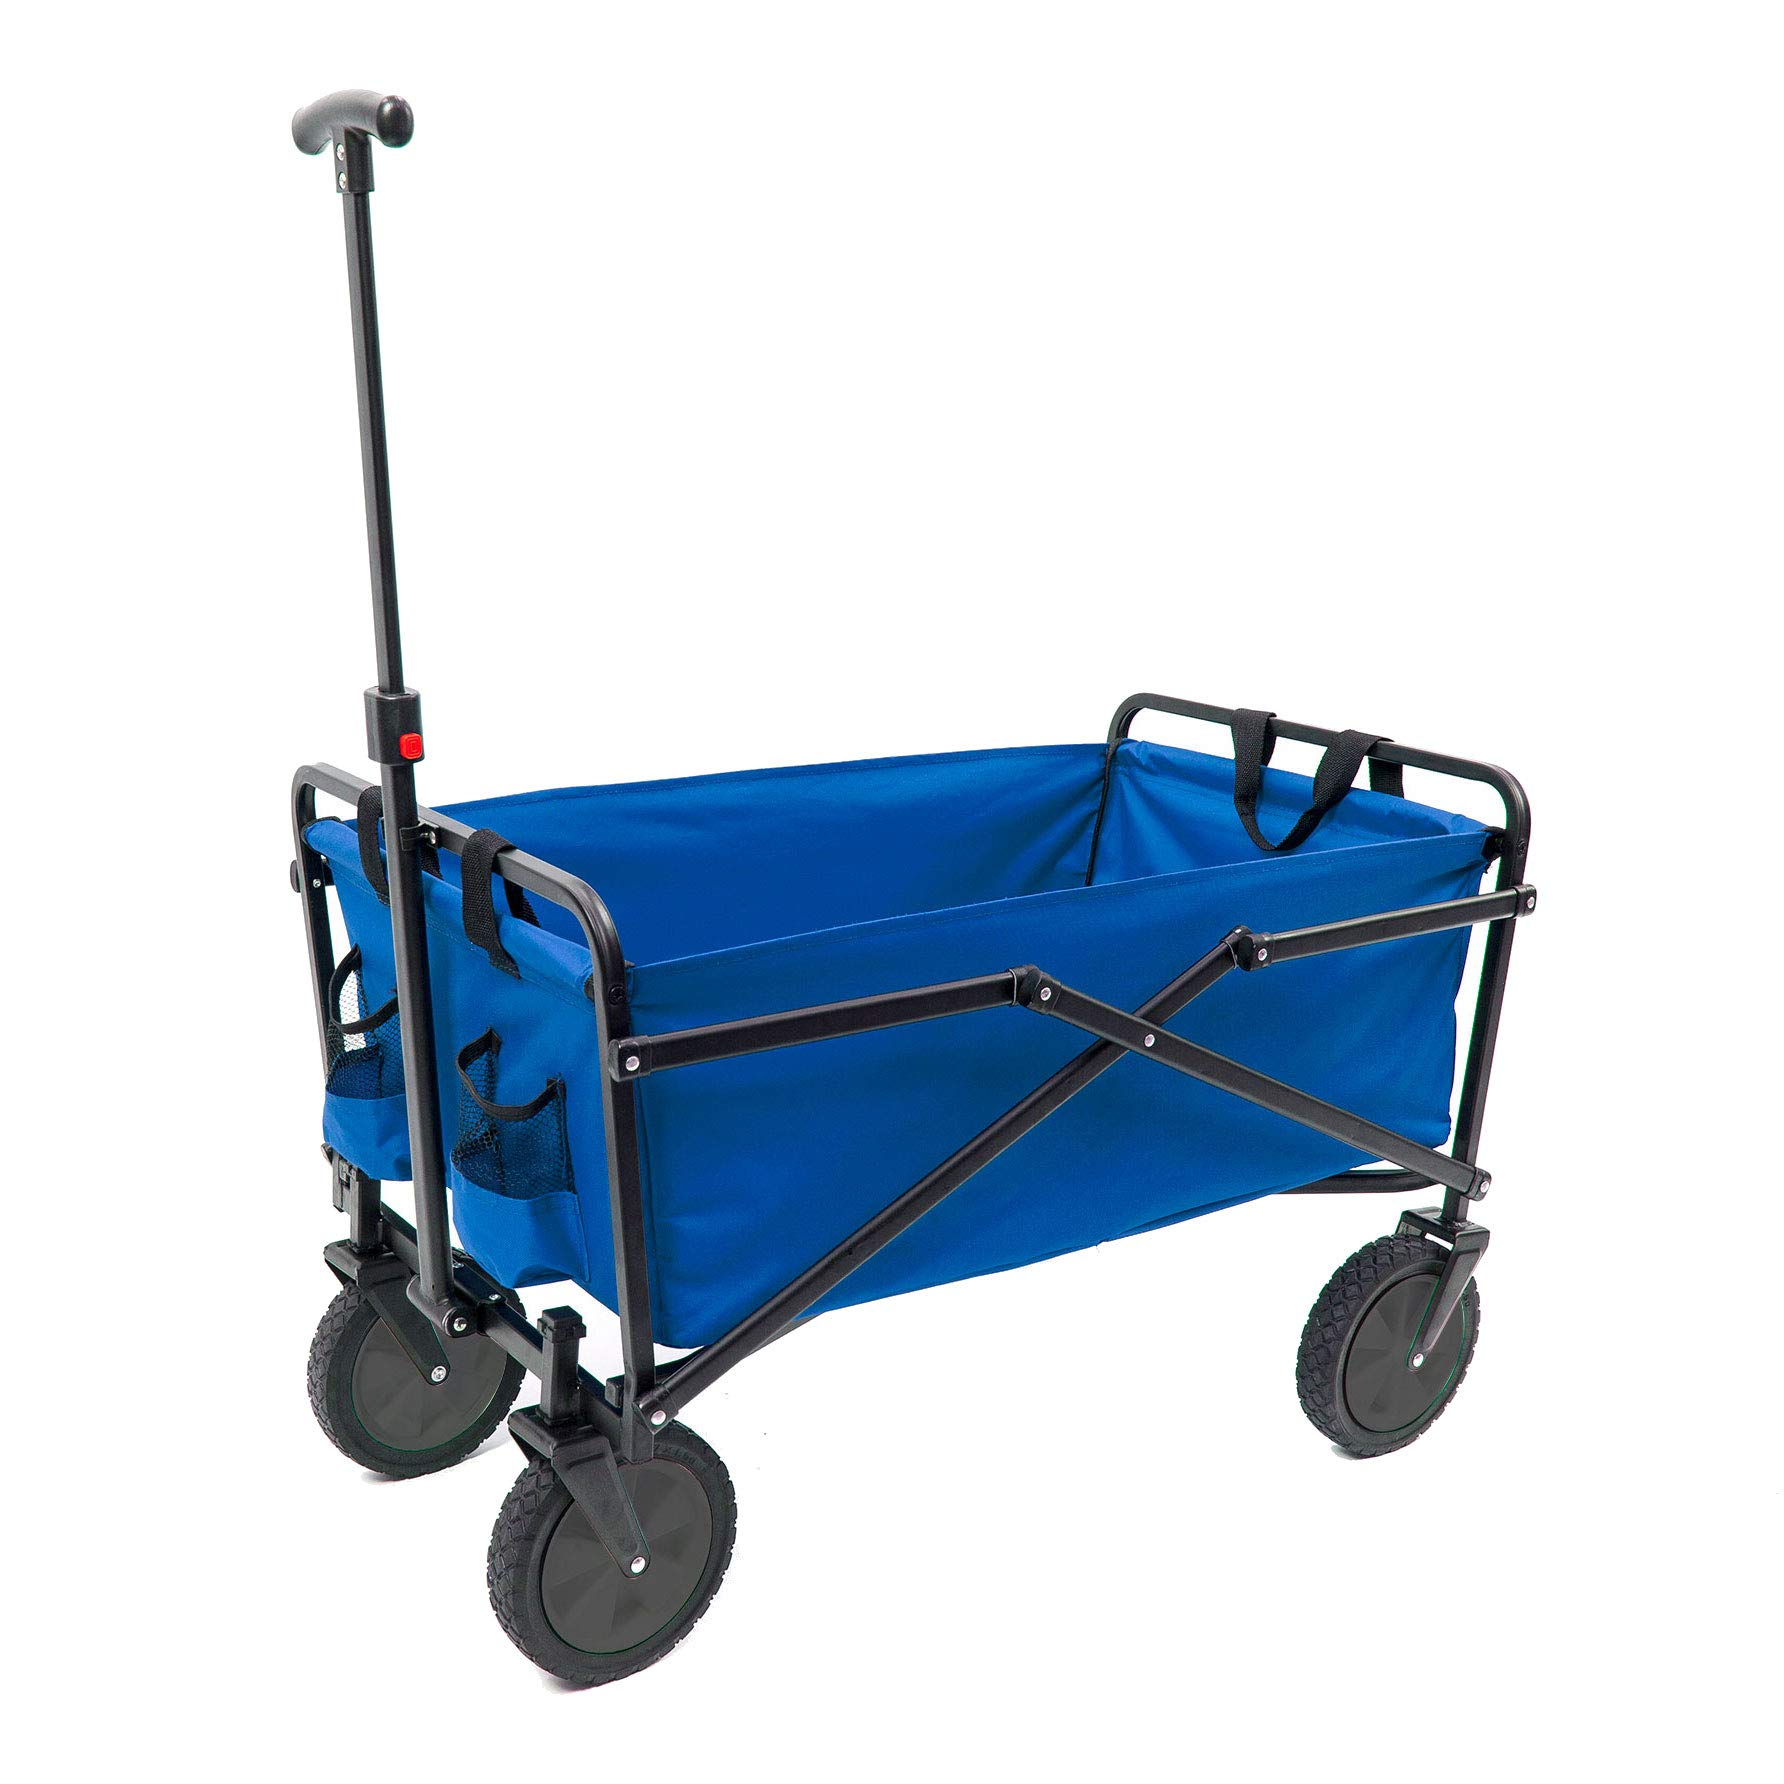 Seina Compact Folding 225-Pound Capacity Utility Cart, Blue